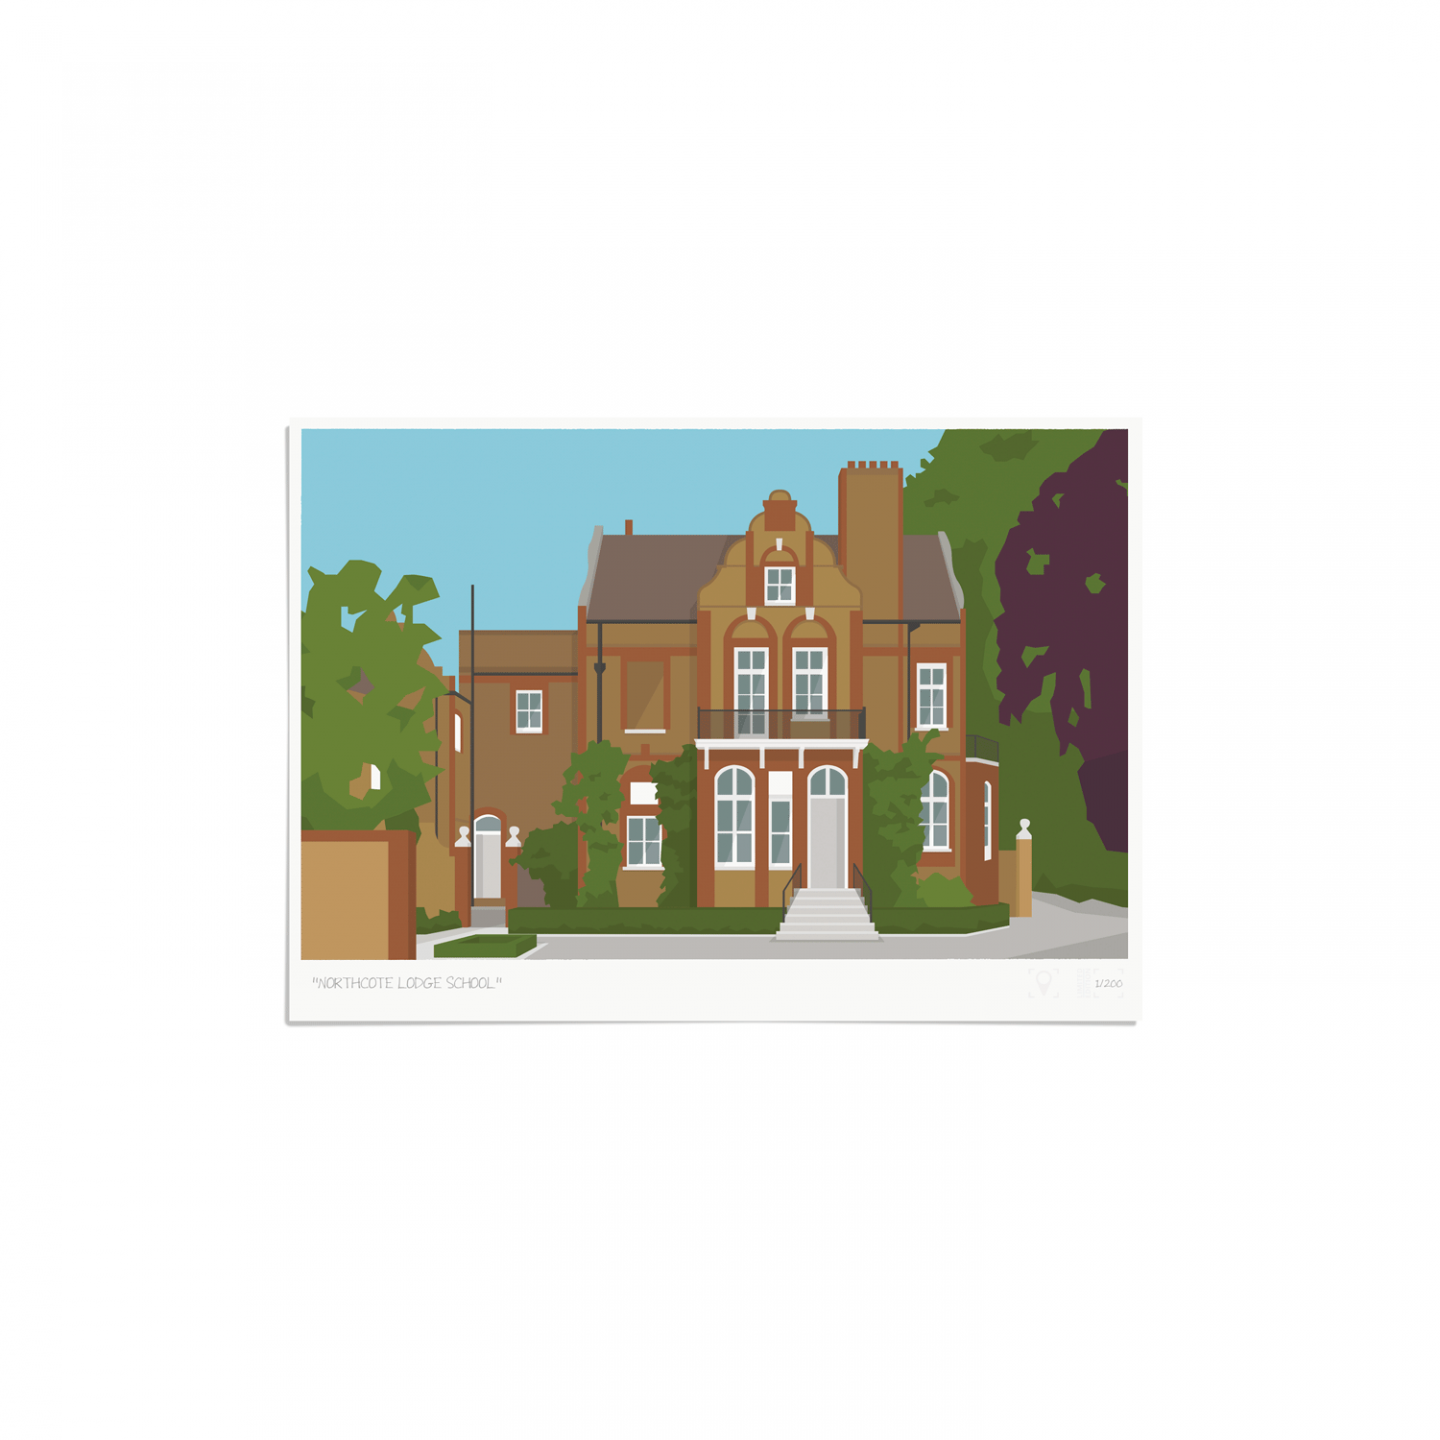 Place in Print Northcote Lodge School Art Poster Print Unframed